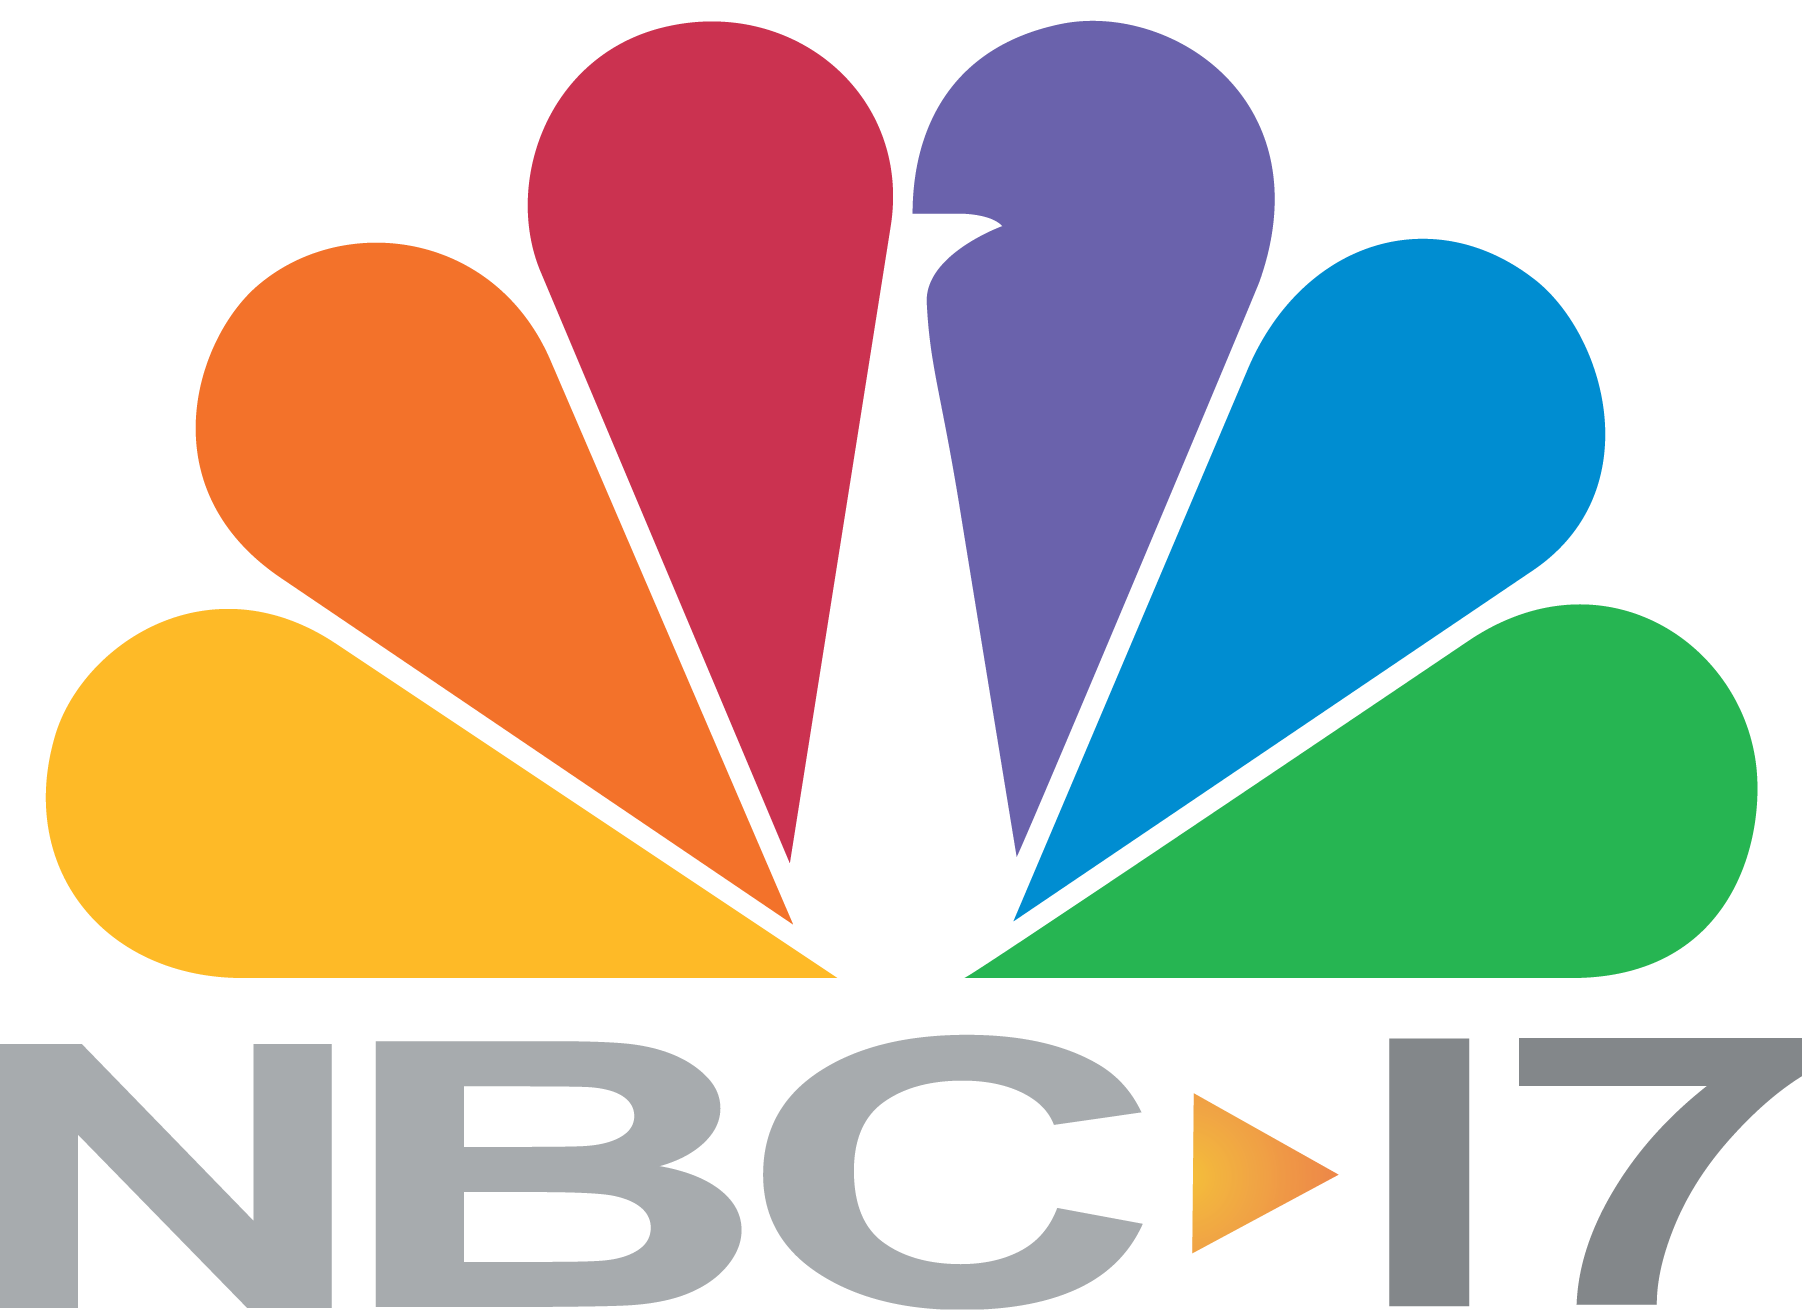 nbc logos | Image - WNCN NBC 17.png - Logopedia, the logo and branding site